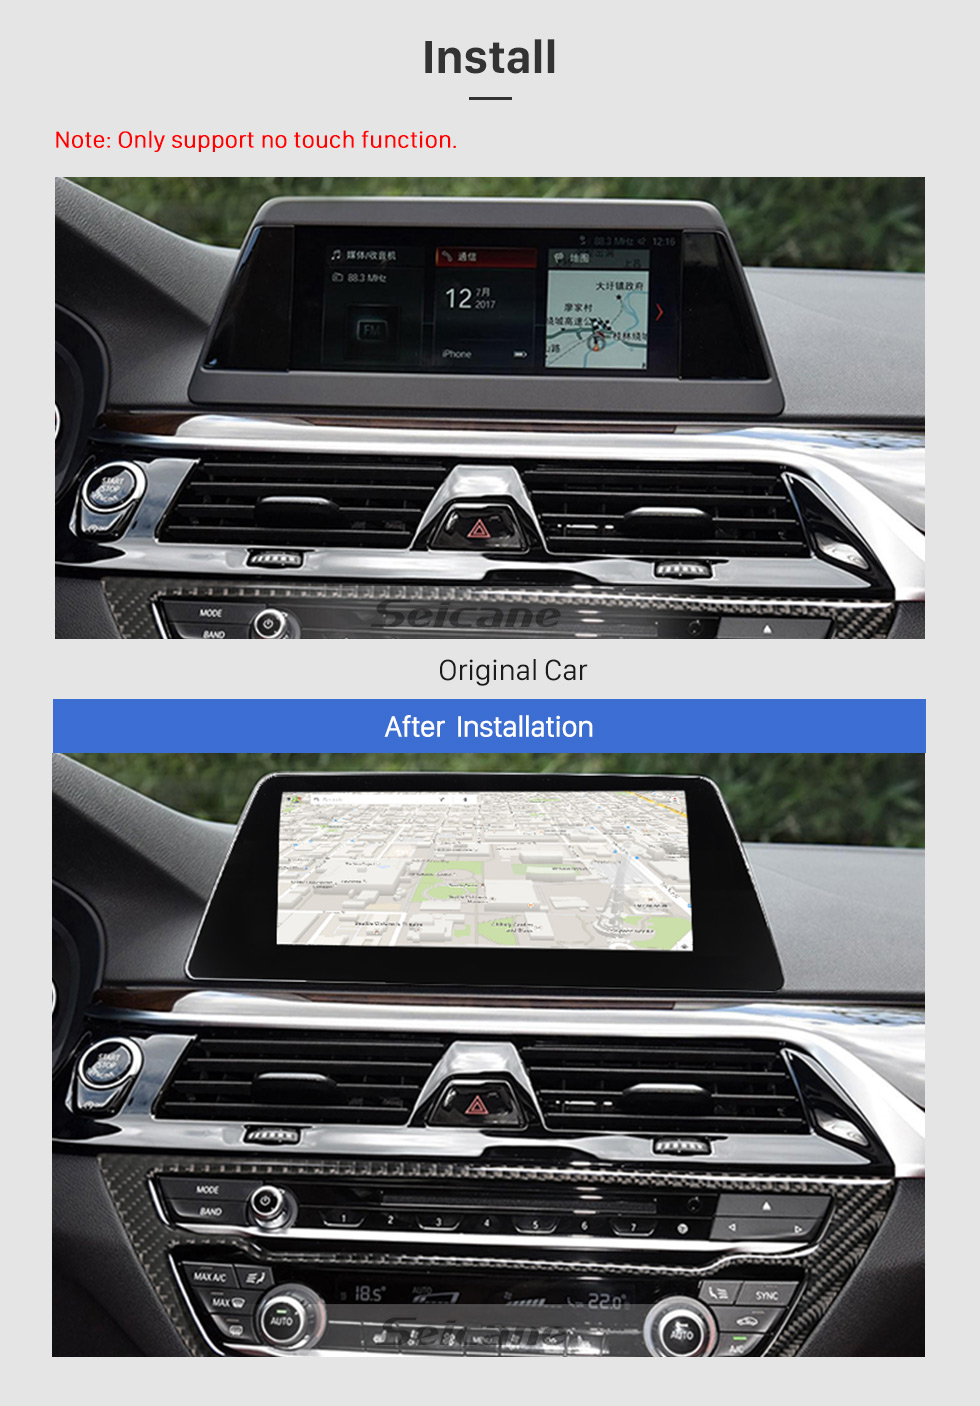 Seicane 10.25 Inch Android 8.1 2018 BMW 5 Series G30 Car Stereo Radio Head Unit GPS Navigation System Bluetooth Support USB WIFI Rearview Camera Steering Wheel Control